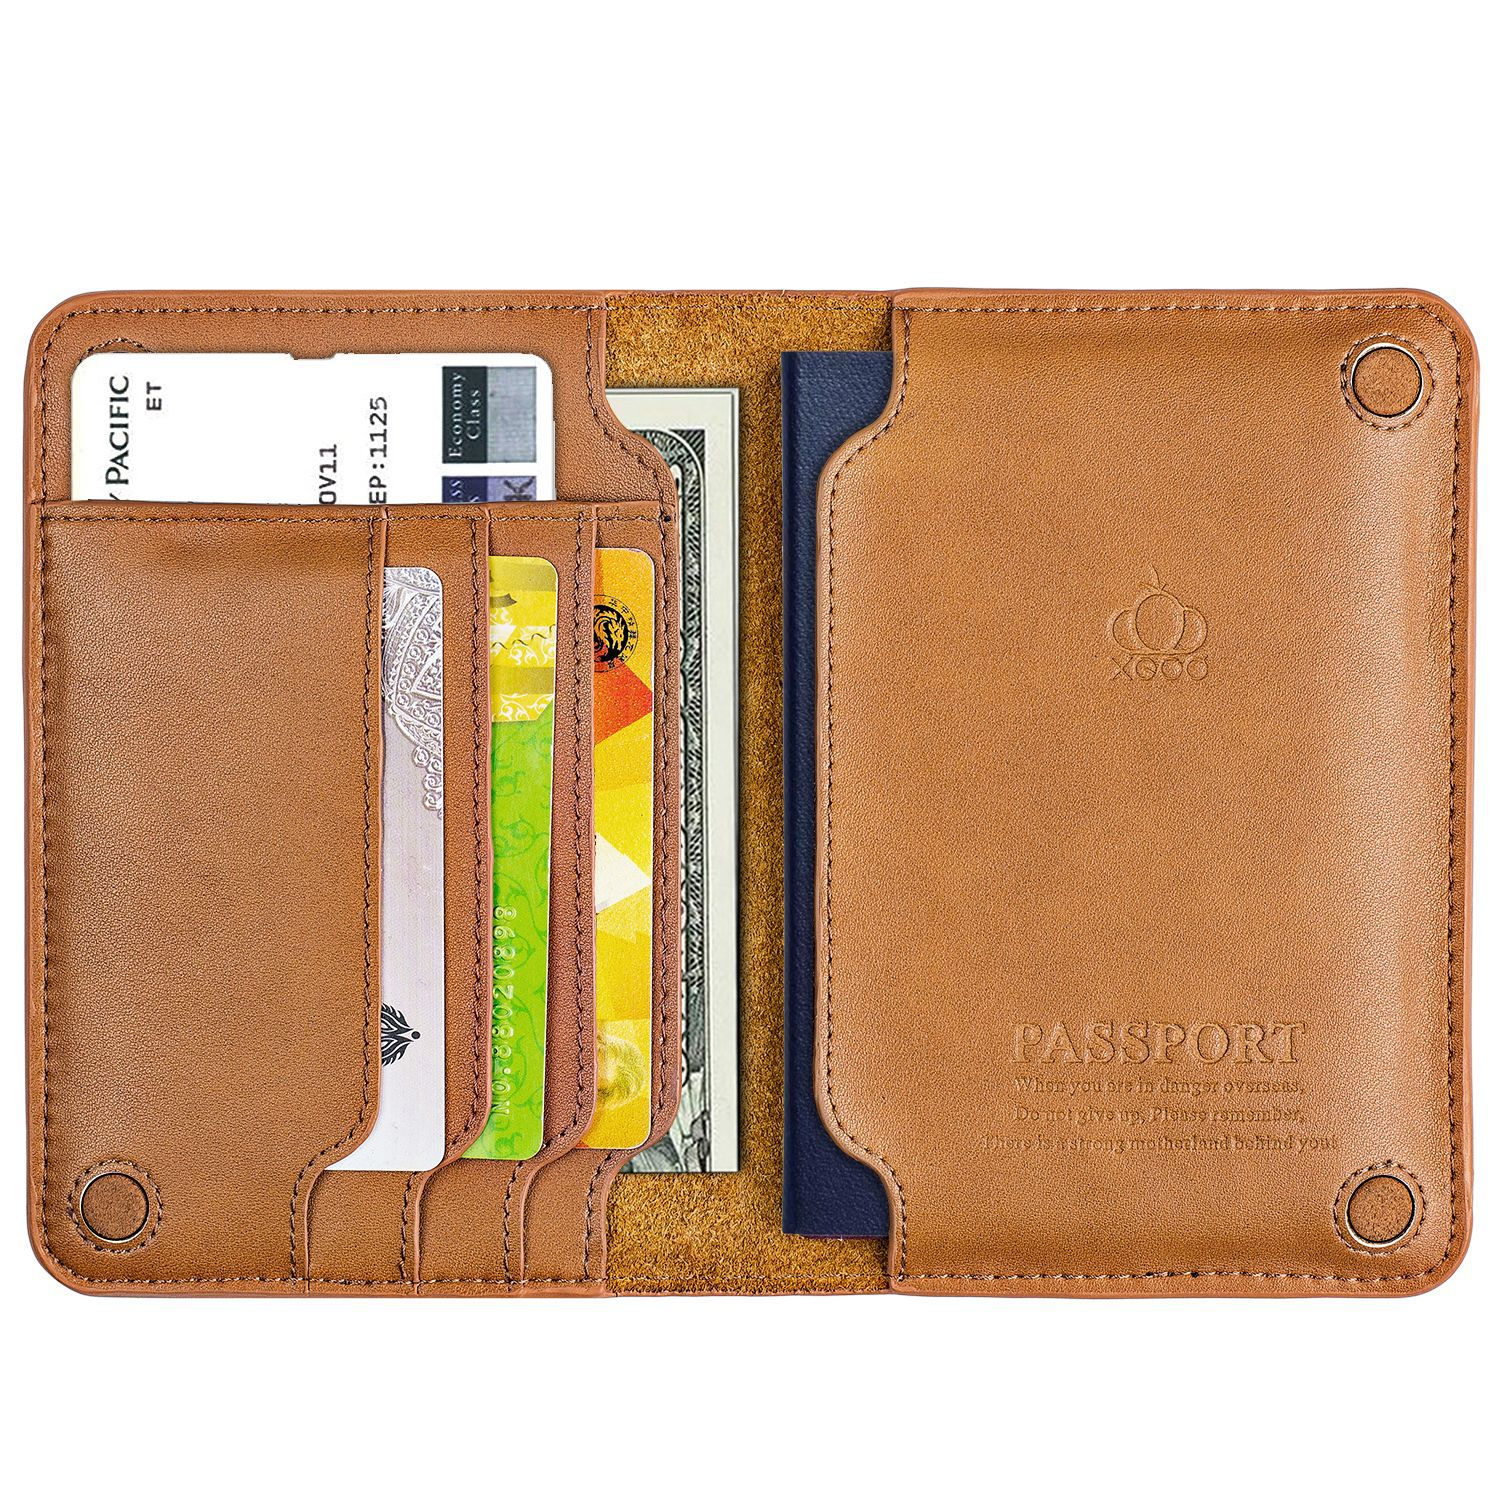 Genuine Leather Card Credit Holder Wallet Car Driving Documents Black Brown Retro Style Auto Driver License Bag For Men Women